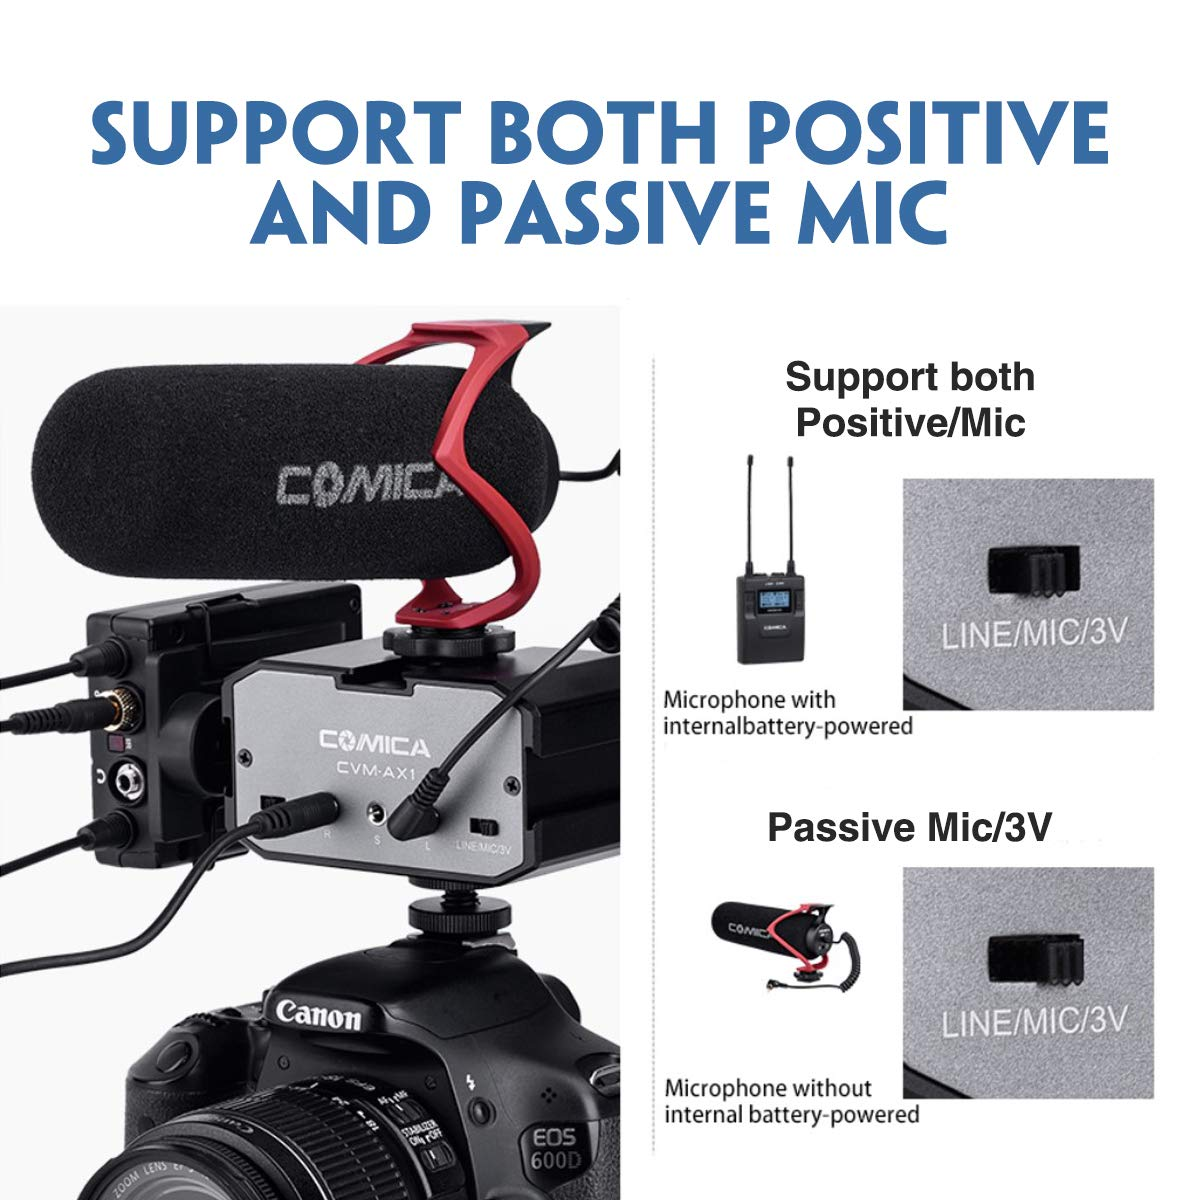 Comica Camera Audio Mixer CVM-AX1 Microphone Video Adapter 5mm Mono Stereo Dual-Channel Mic Amplifier for Smartphone DSLR Camcorder Camera Canon Nikon Sony Panasonic Full Aluminum Housing